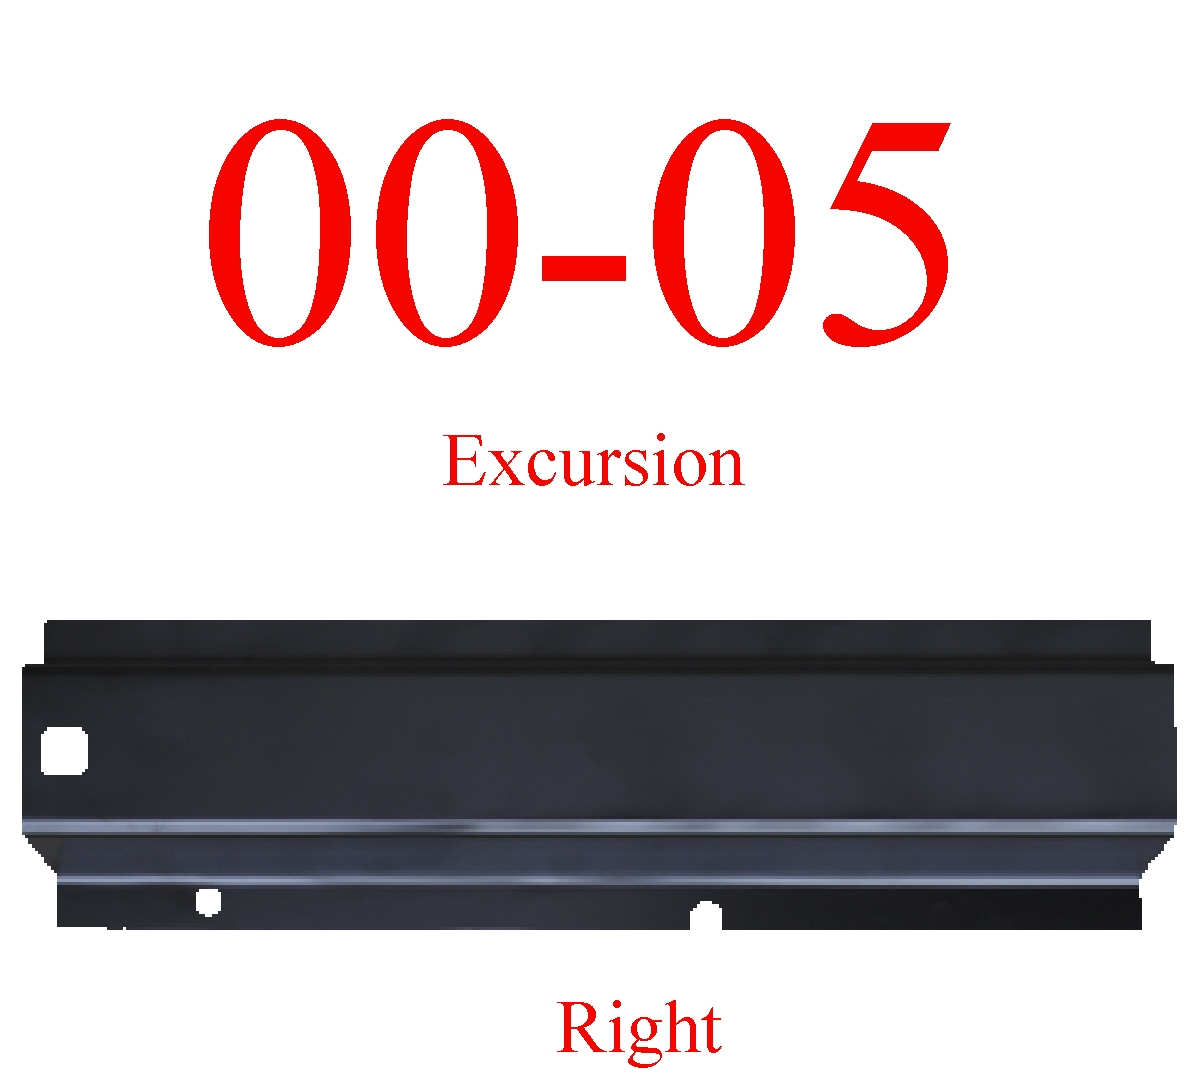 00-05 Excursion Right Rear Rocker Panel